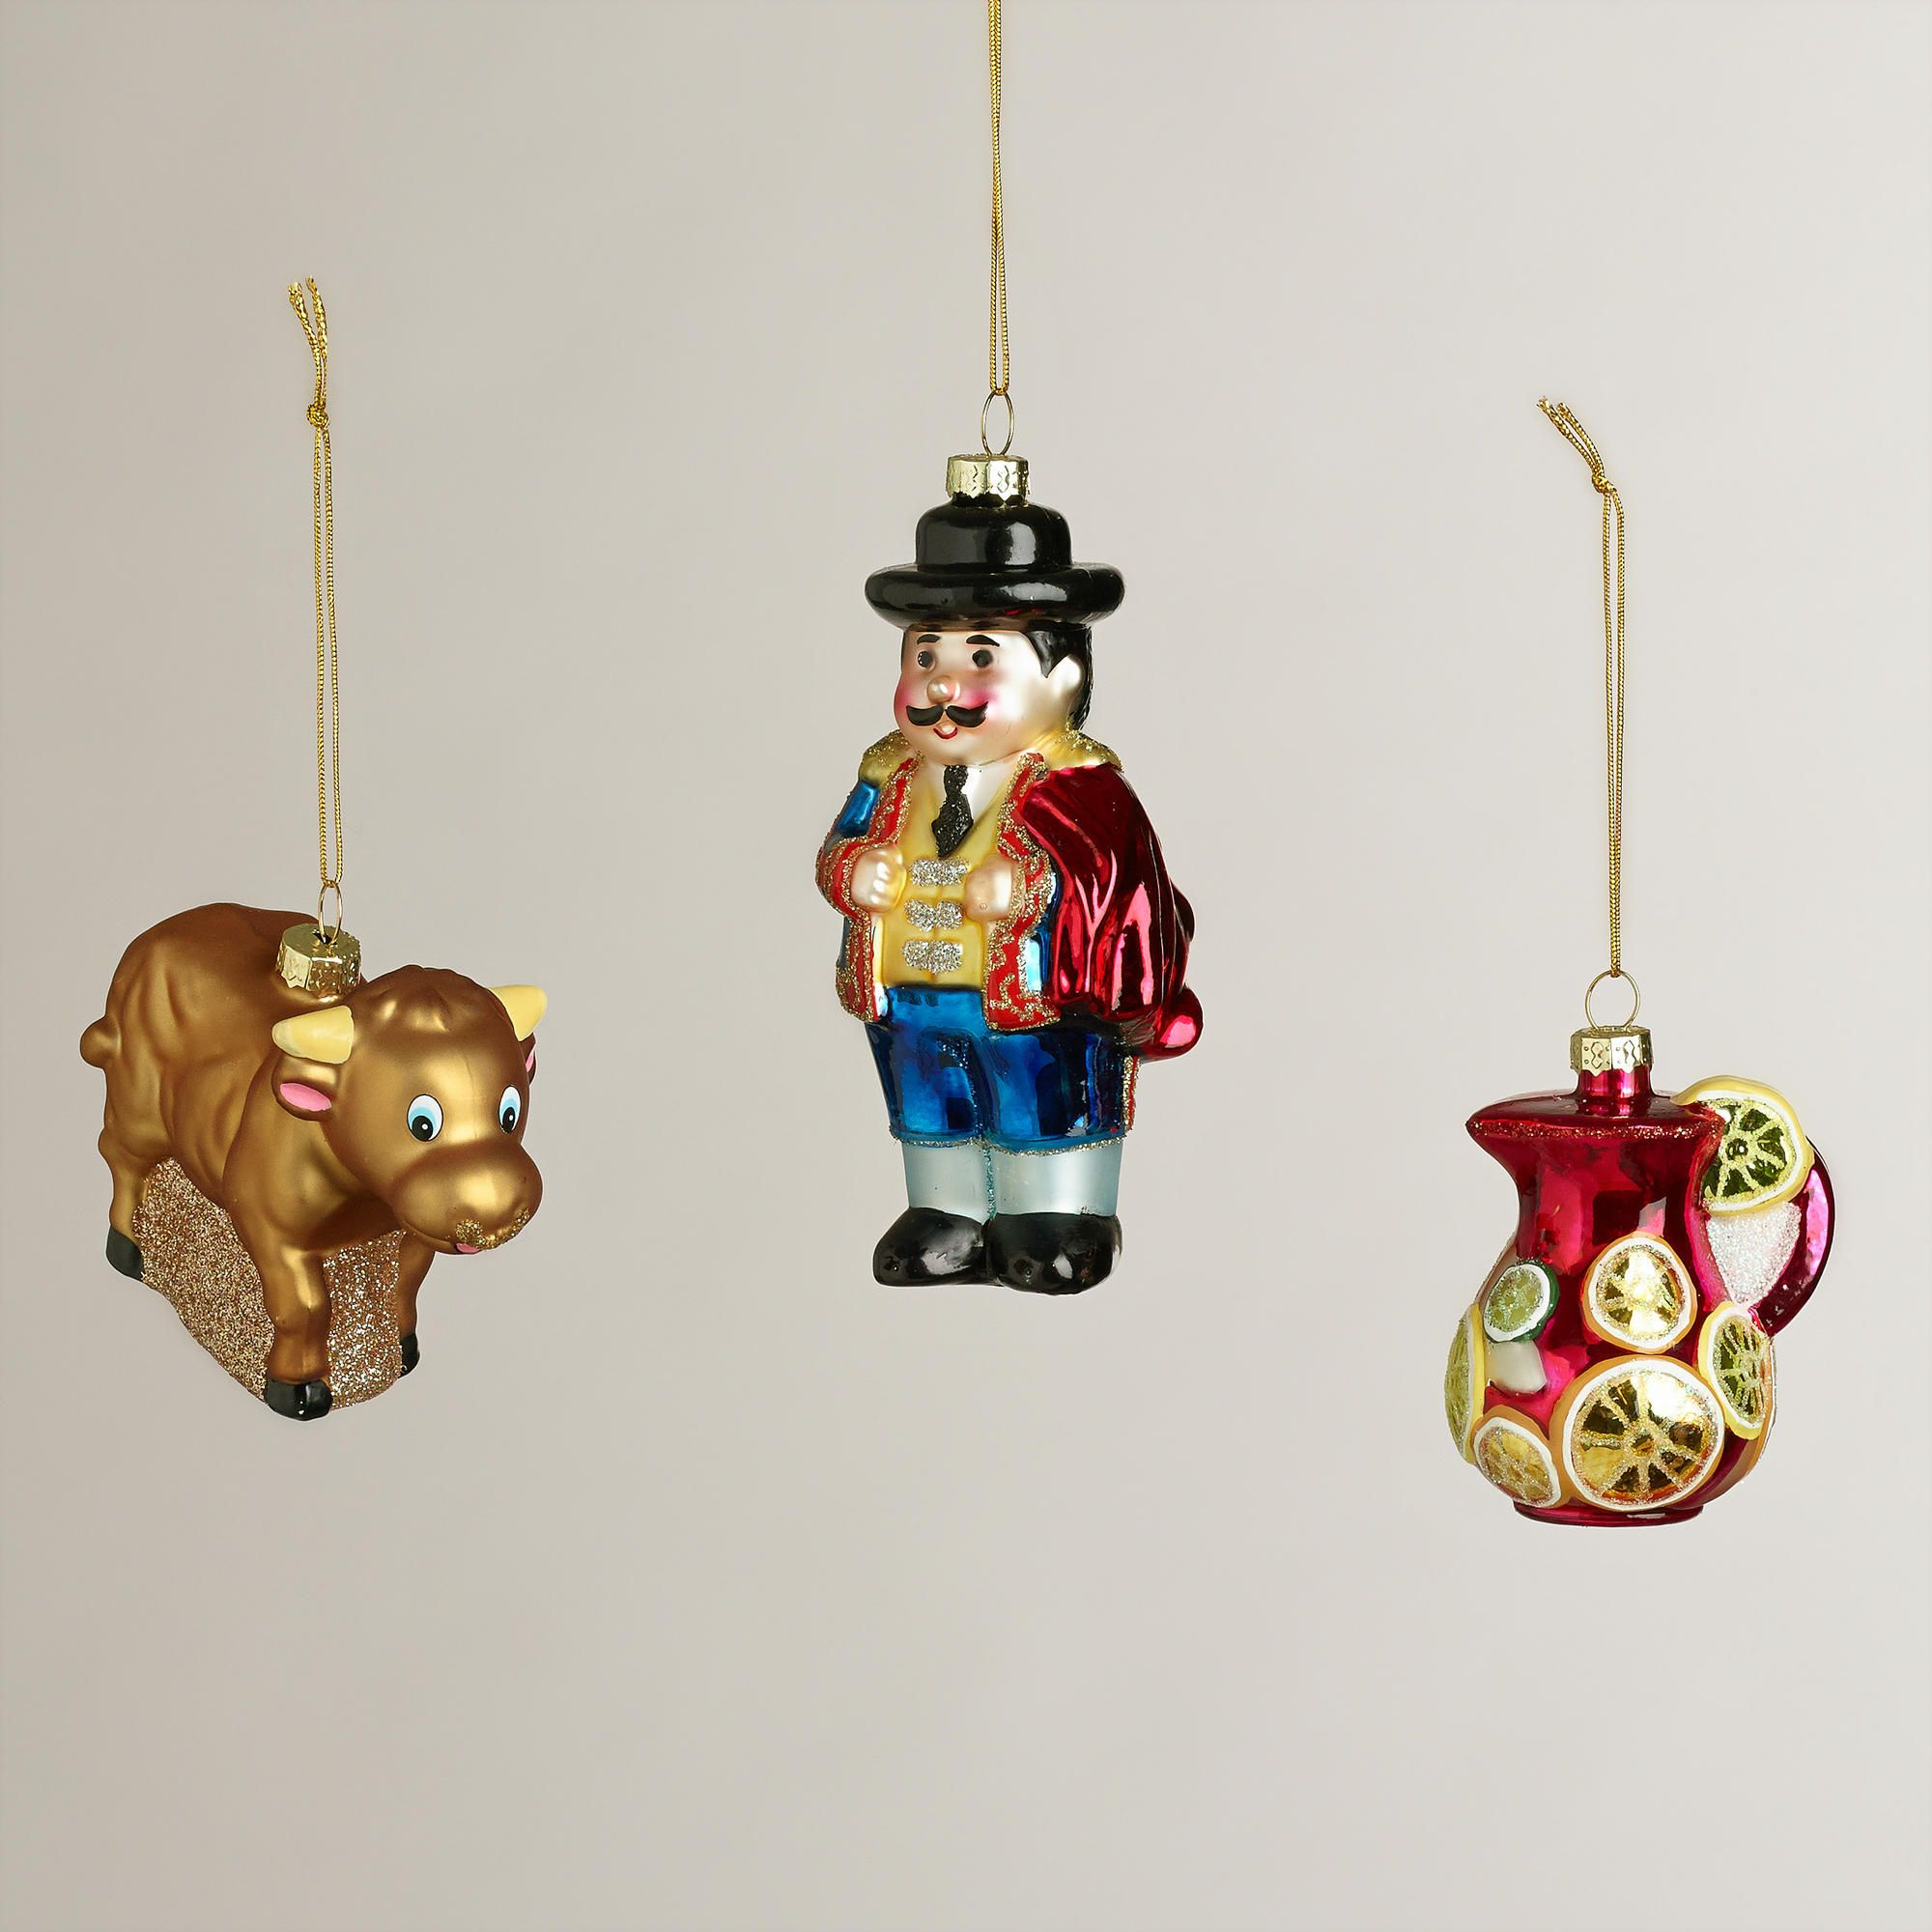 Christmas Ornaments Online Shopping Europe: Glass Spain Boxed Ornaments, Set Of 3 WAS $14.99